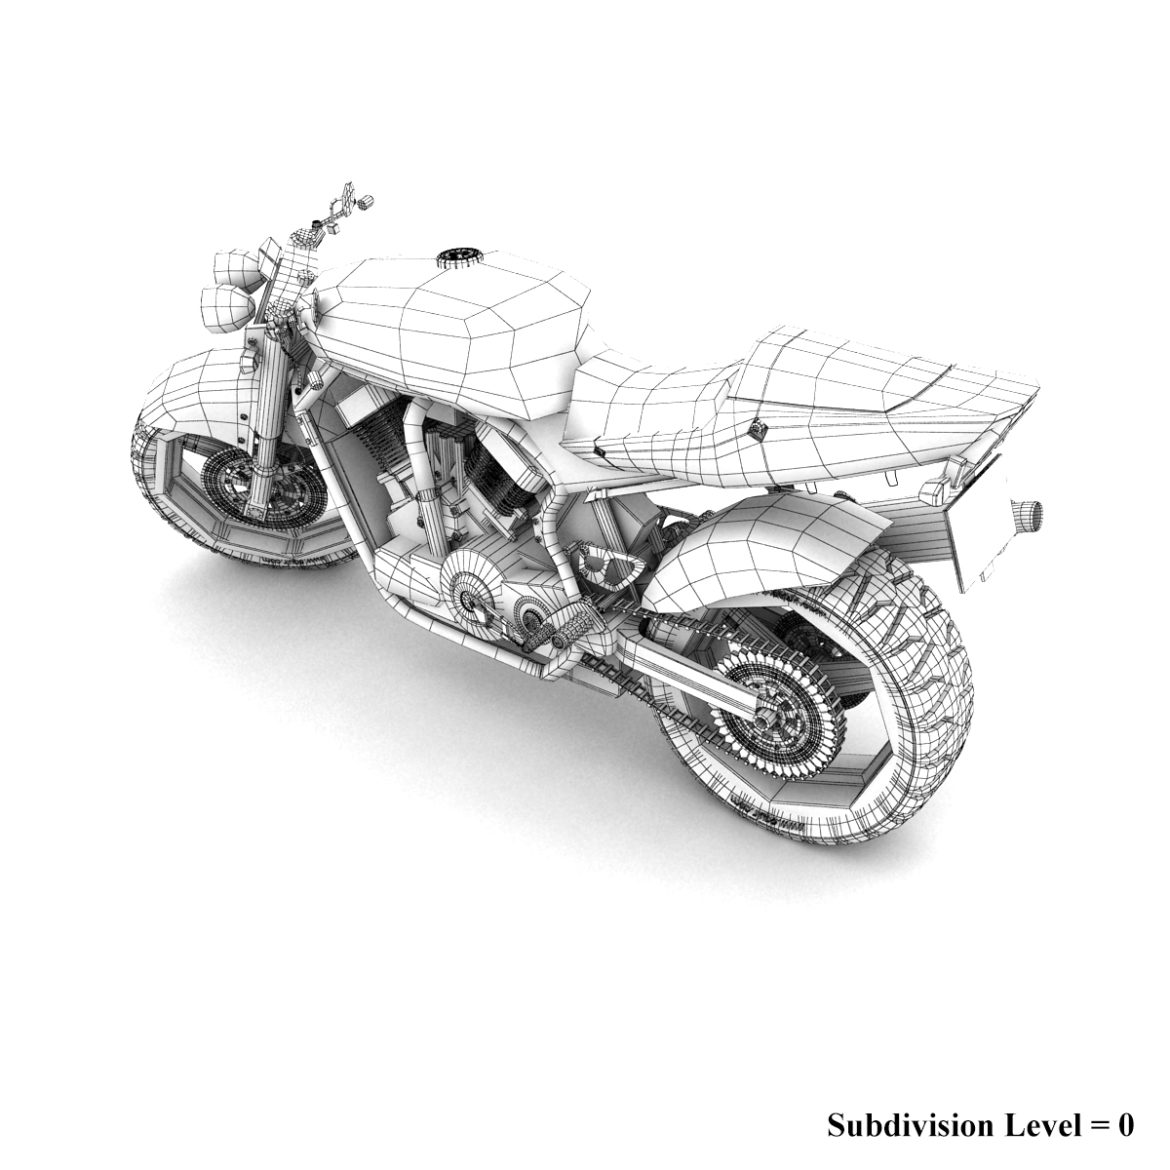 suzuki street fighter motorcycle 3d model 3ds max fbx obj 293874